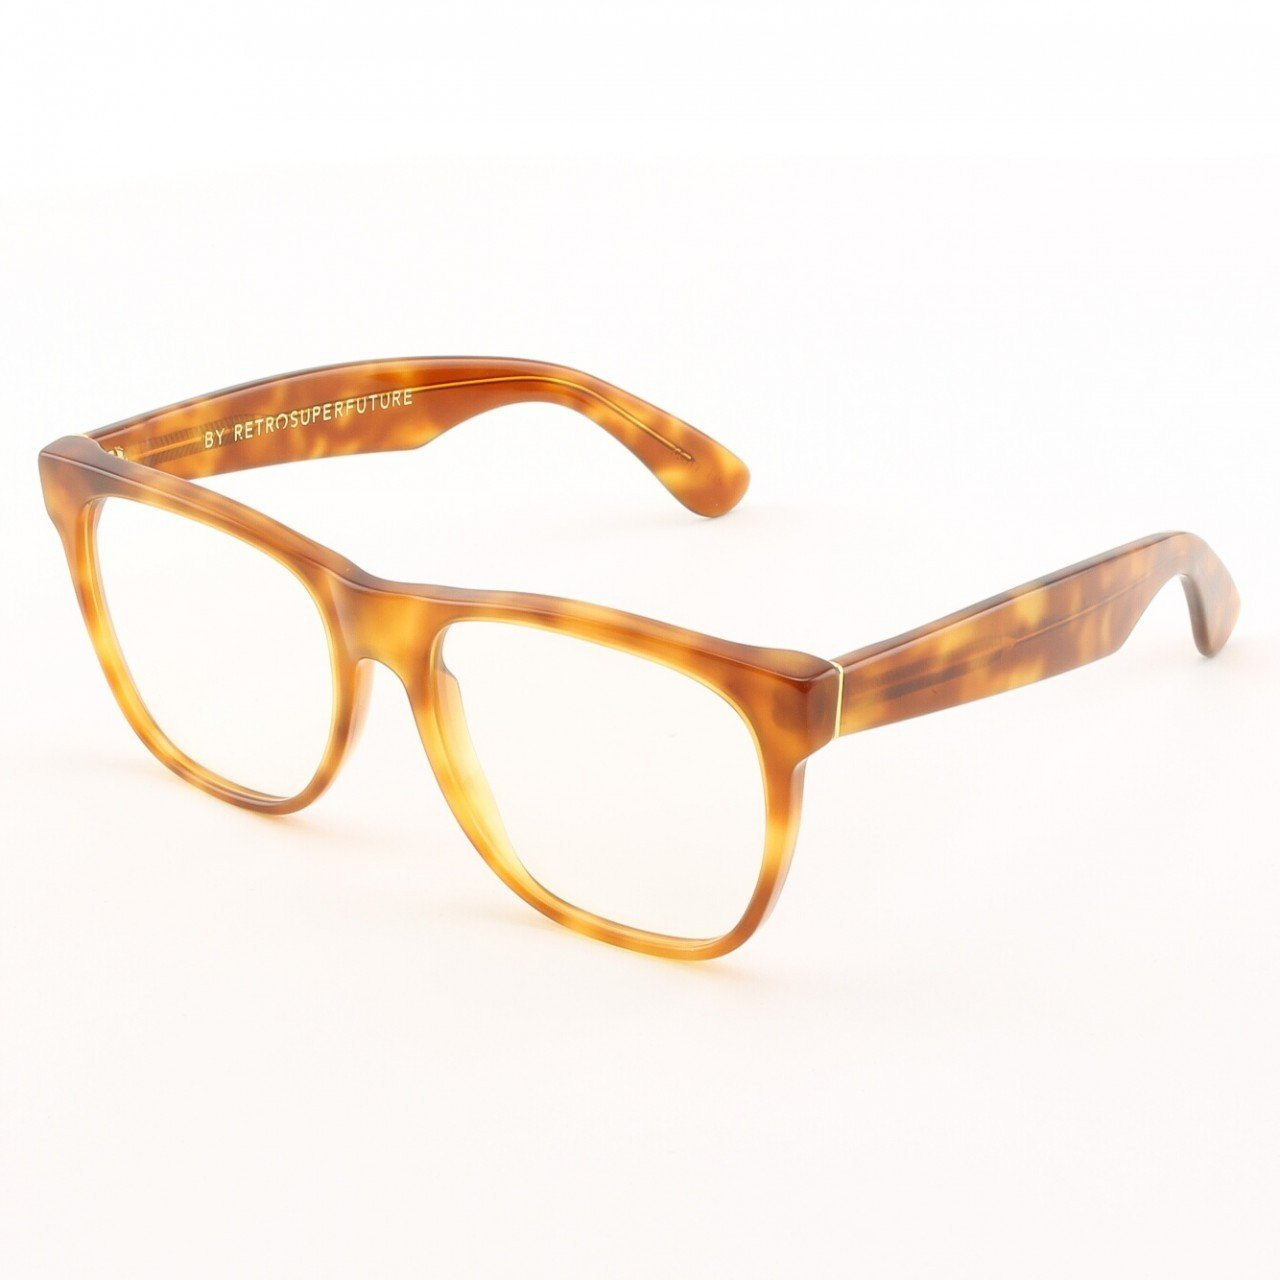 Super Classic 619 Wayfarer Eyeglasses Light Havana with Clear Zeiss Lenses by RETROSUPERFUTURE